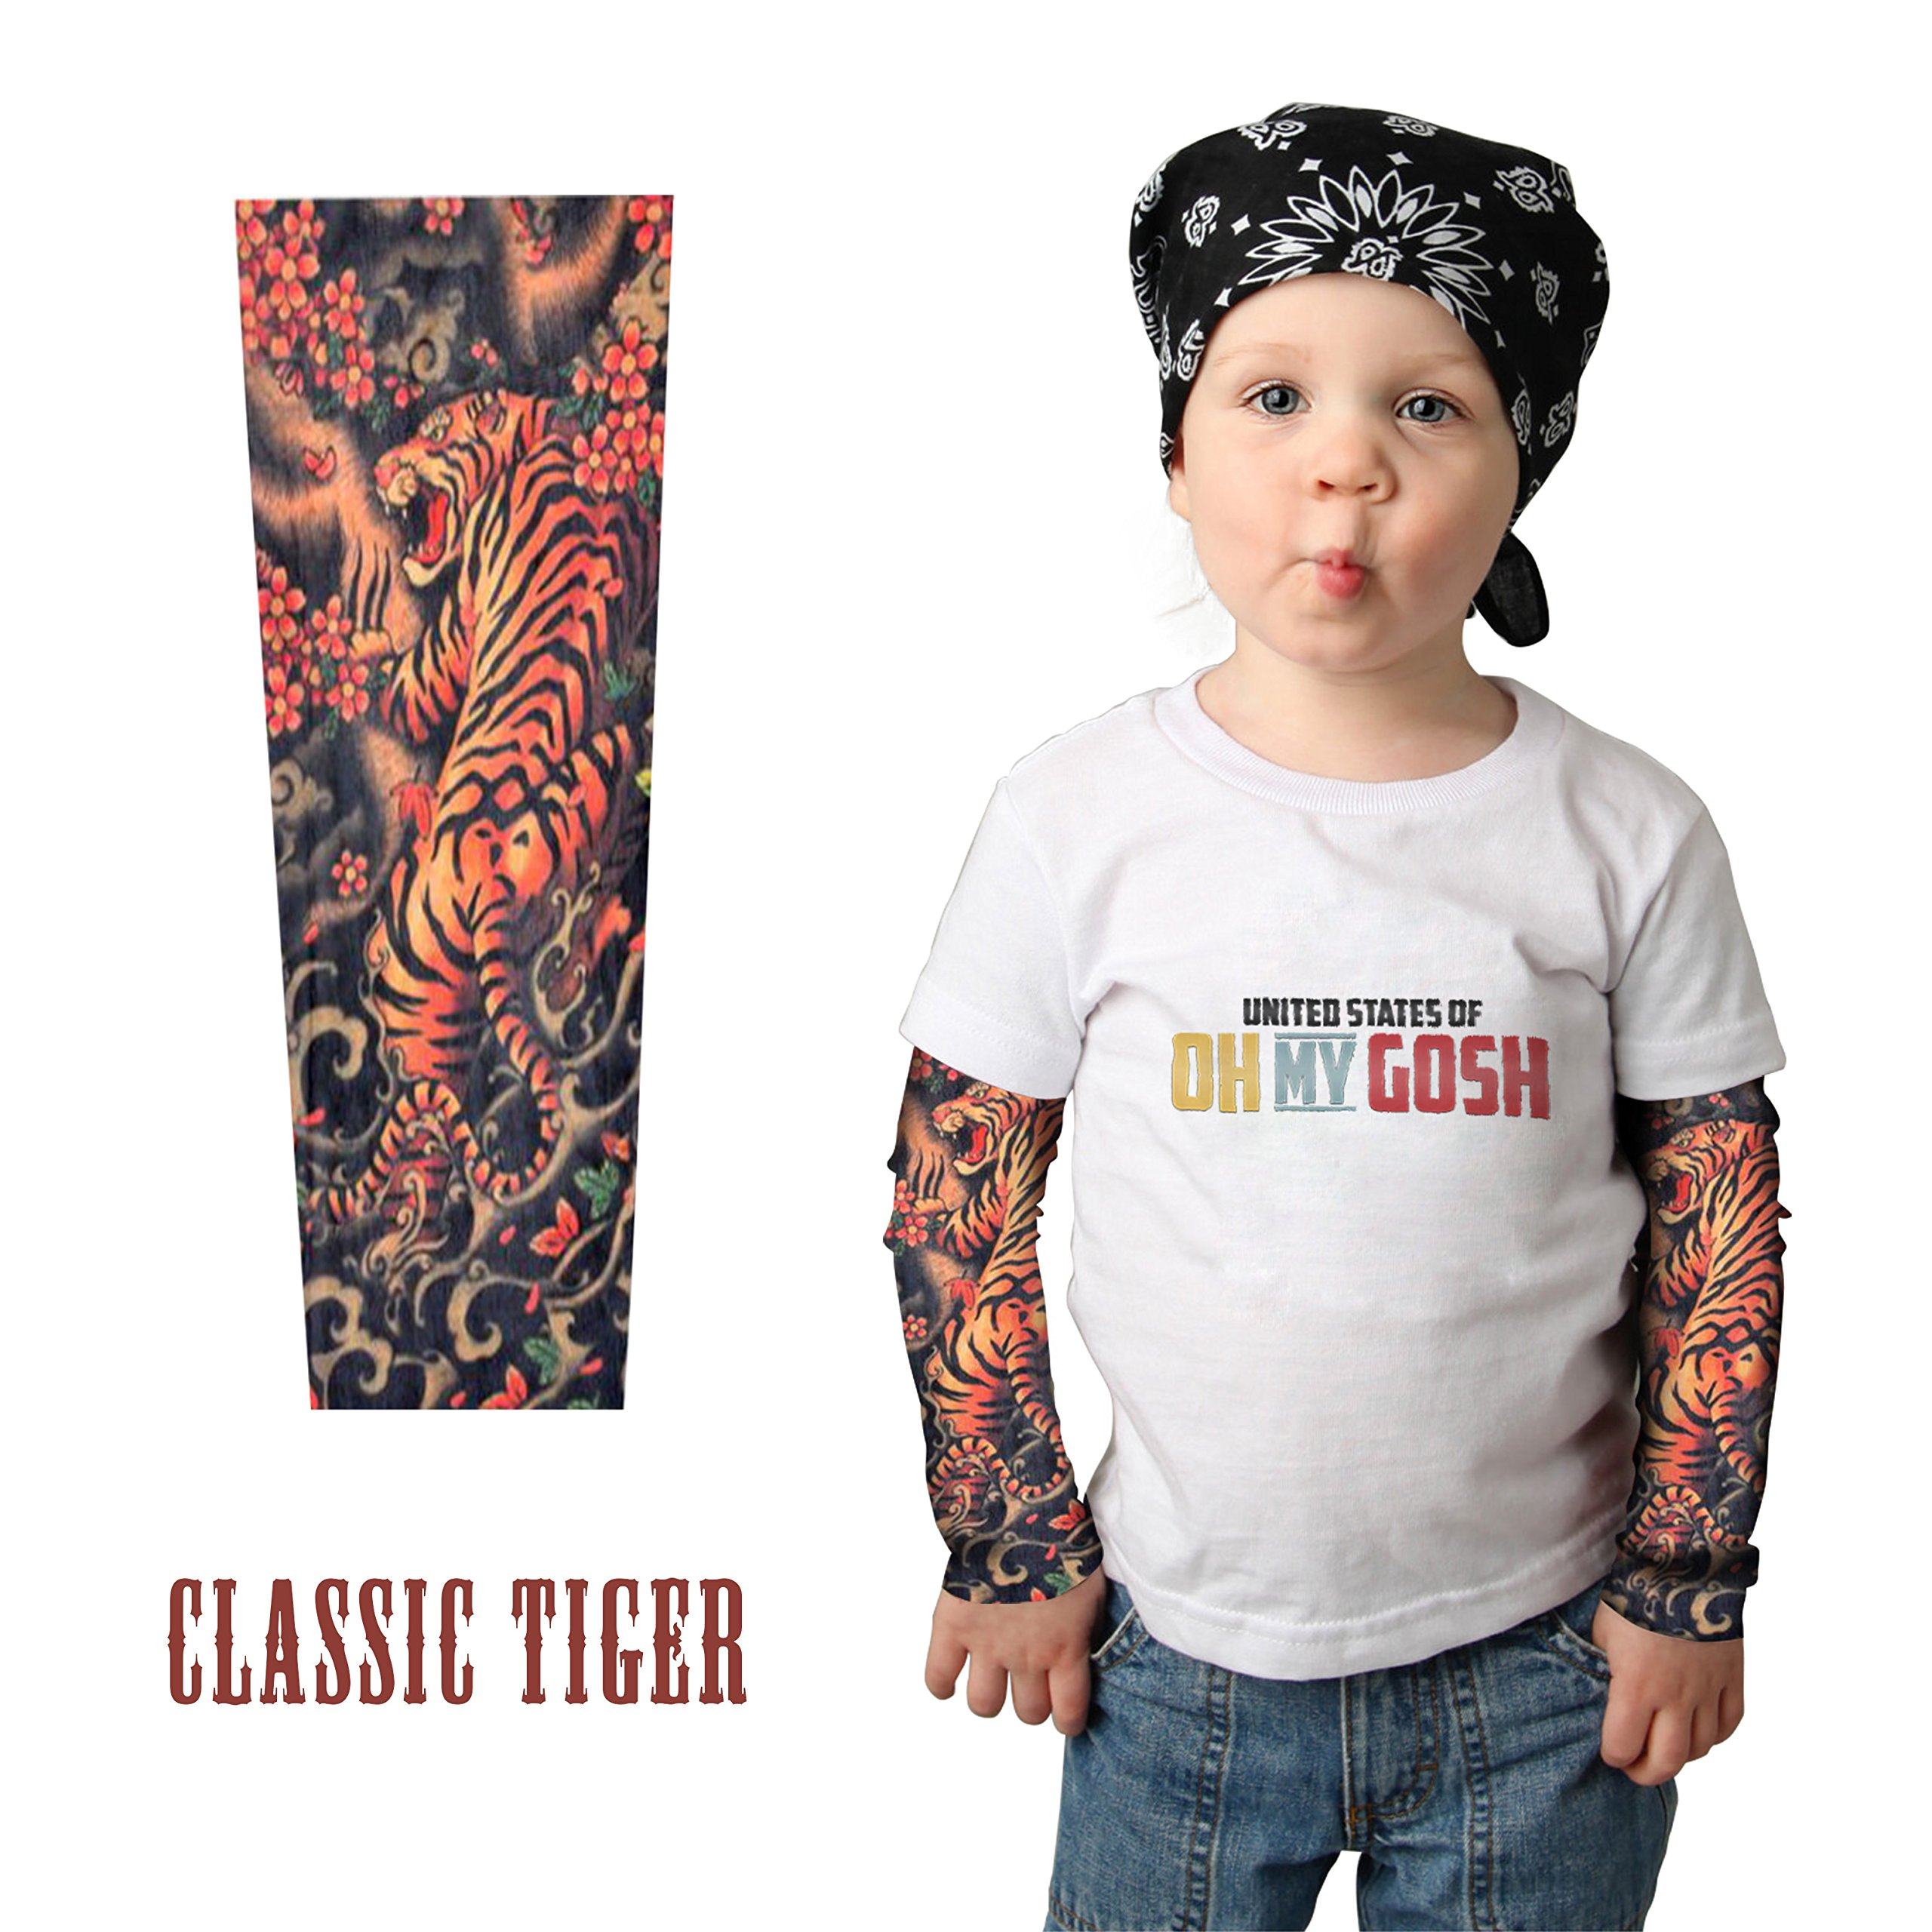 Childrens' Tattoo Sleeves (x2) - Coolest Neoprene Tattoo Sleeves for Sun Protection and Being Tough (Classic Tiger) by United States of Oh My Gosh (Image #2)